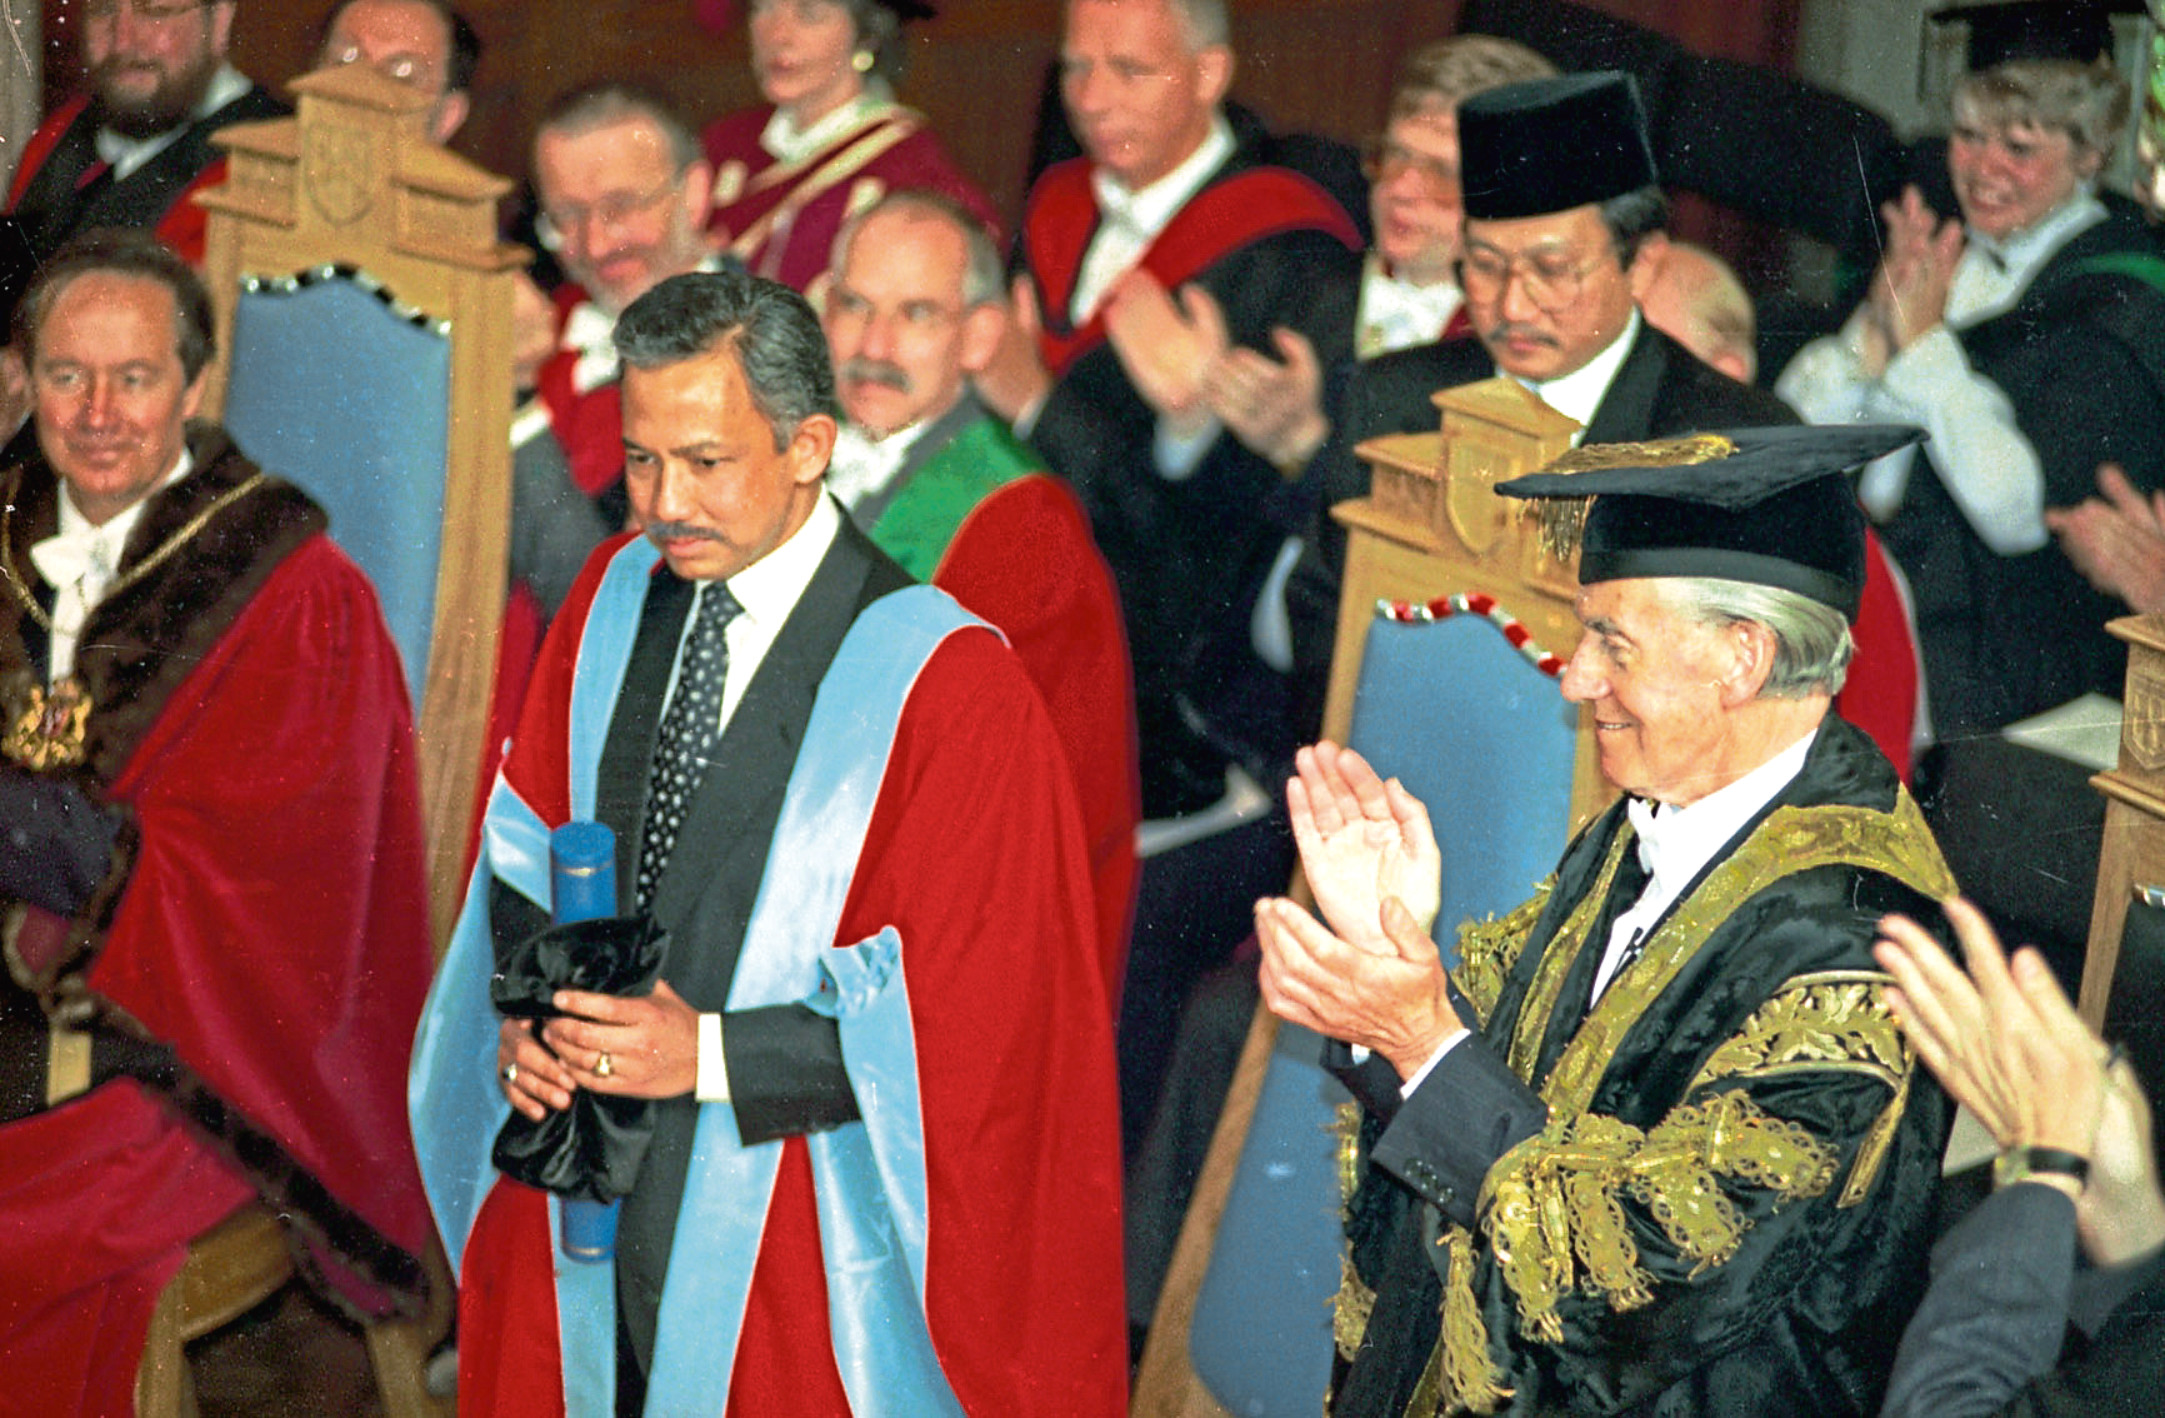 EE Memories. EE 2.4.2008. EYES RIGHT: The Sultan of Brunei, receives an Honorary Doctor of Law degree at an Aberdeen University graduation ceremony in 1995. The Sultan is applauded by university chancellor Sir Kenneth Alexander, right. ABERDEEN JOURNALS Ltd. 6.7.1995. Used EE 6.7.1995. ( 001688 Neg 19).